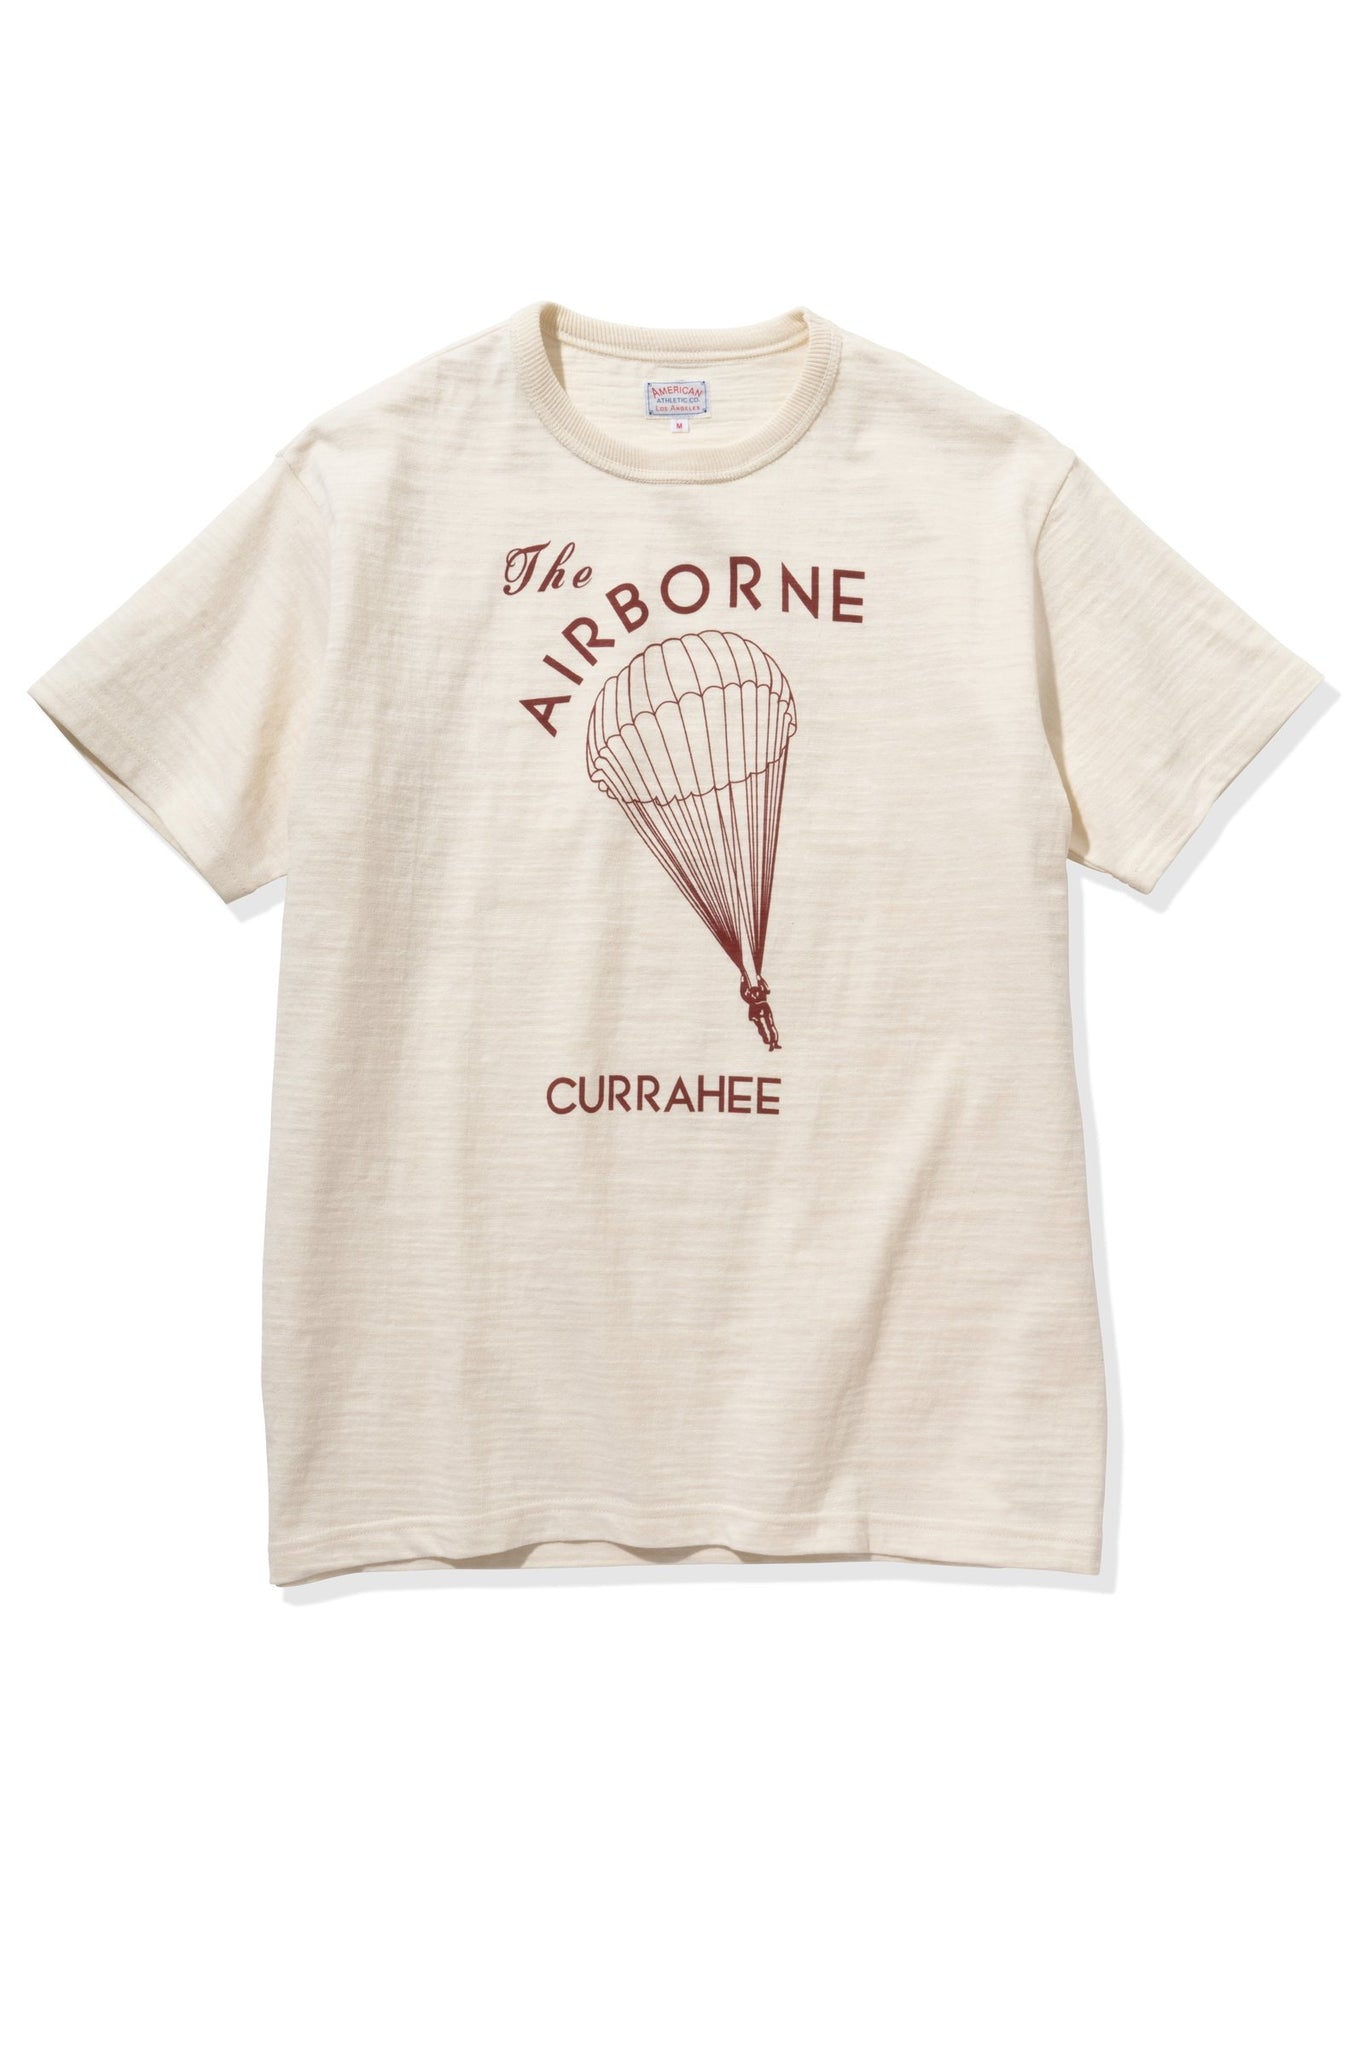 AMERICAN ATHLETIC TEE / THE AIRBORNE CURRAHEE